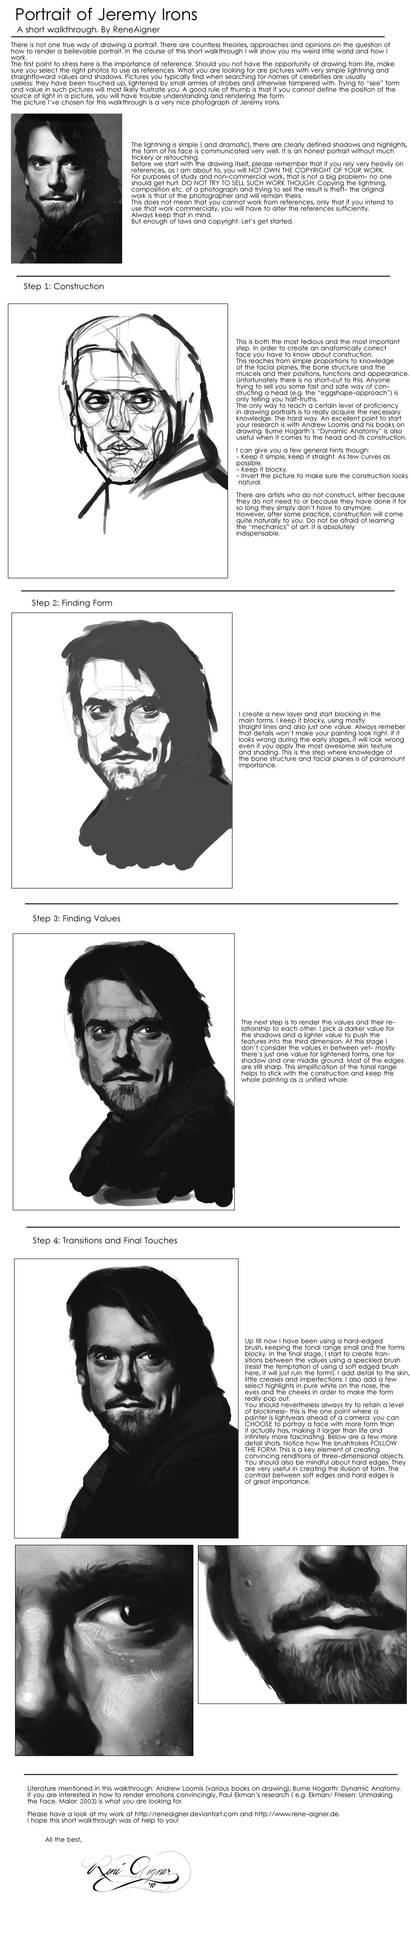 Portait of J. Irons: Tutorial